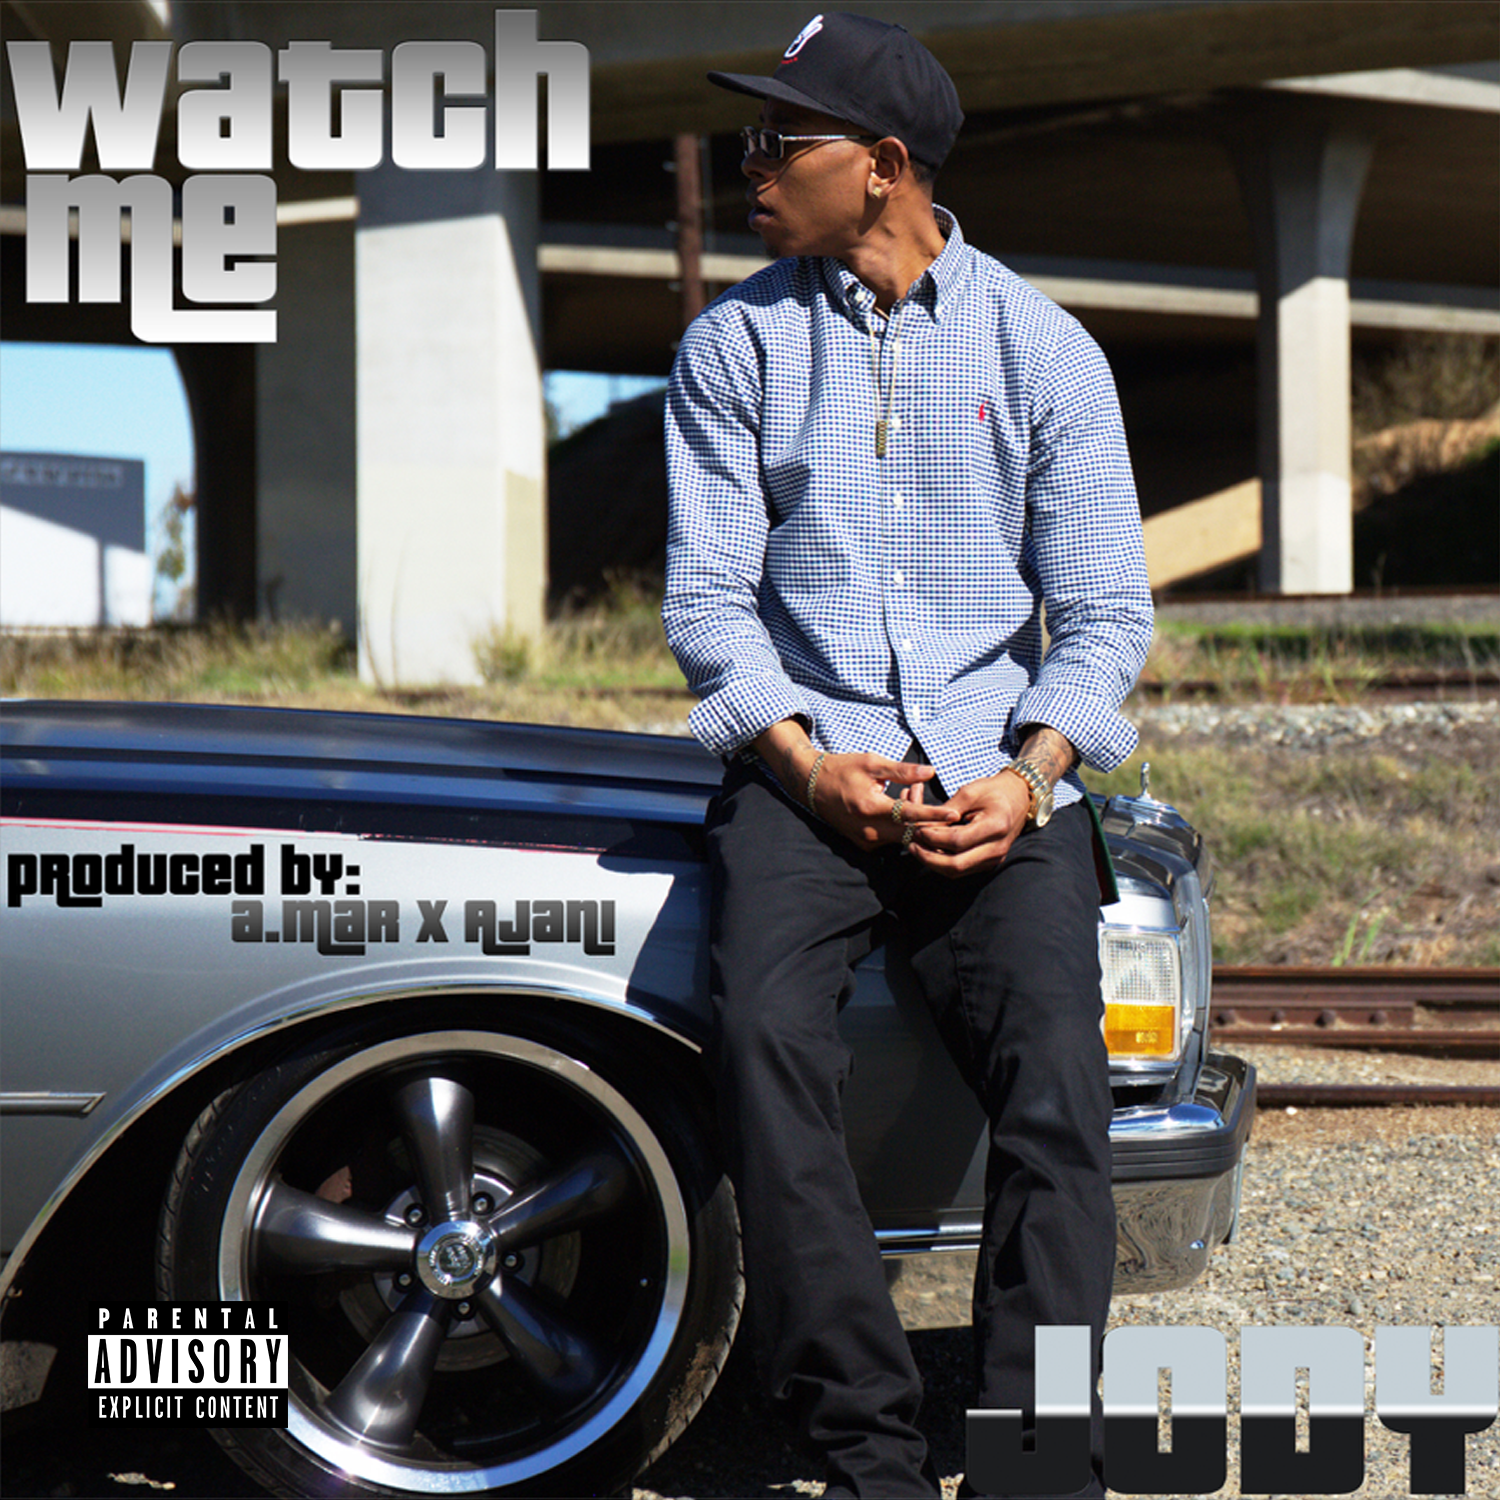 JODY41 - WATCH ME (PRODUCED BY A.MAR).png